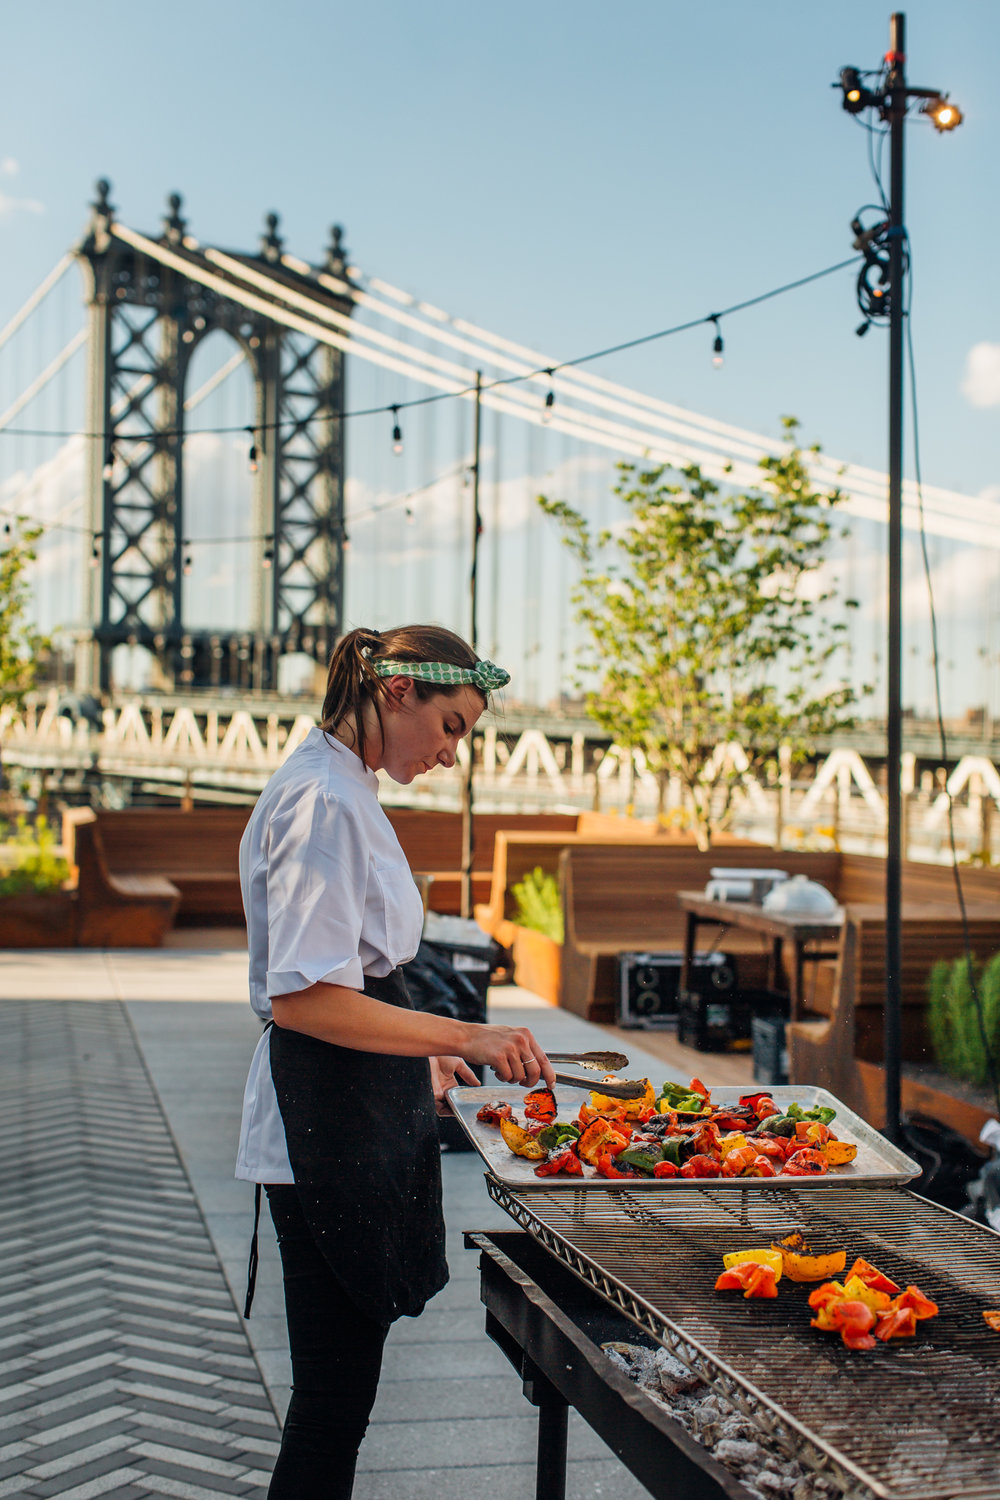 Chef Katelyn Shannon prepares vegetables during sweetgreen's launch in Brooklyn, New York on June 20, 2017.